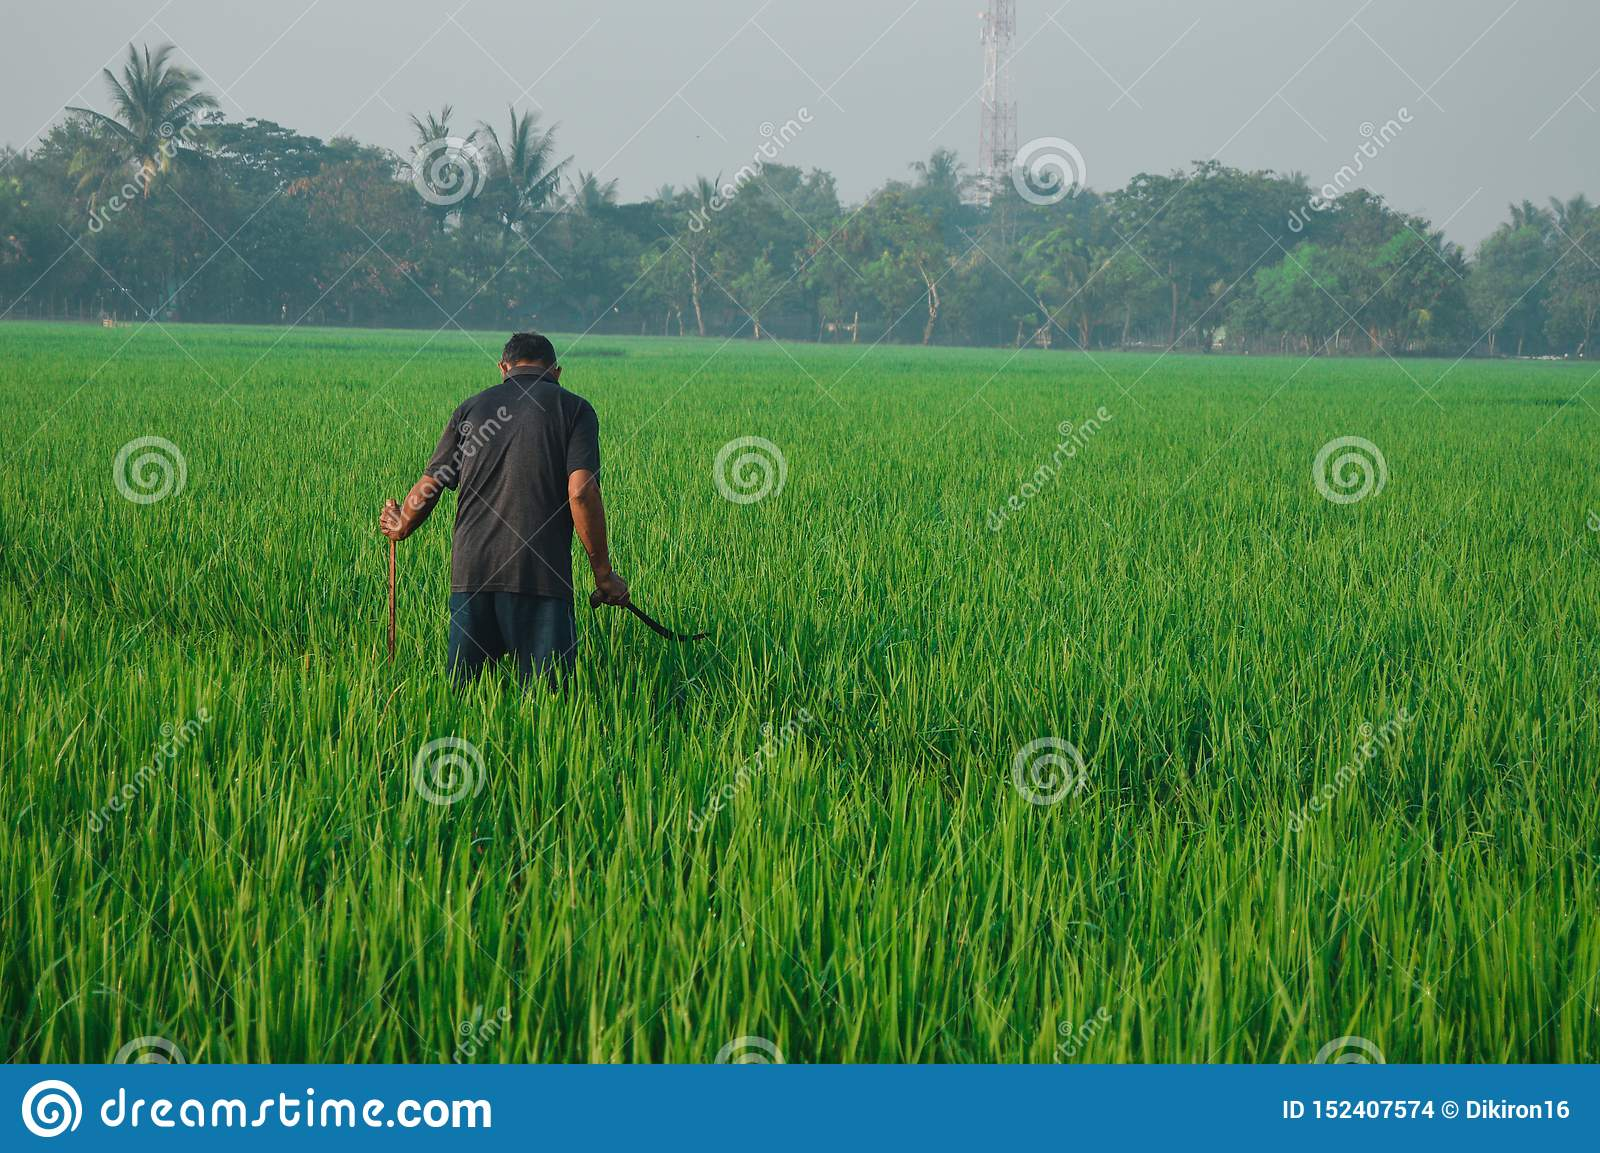 A farmer who is working